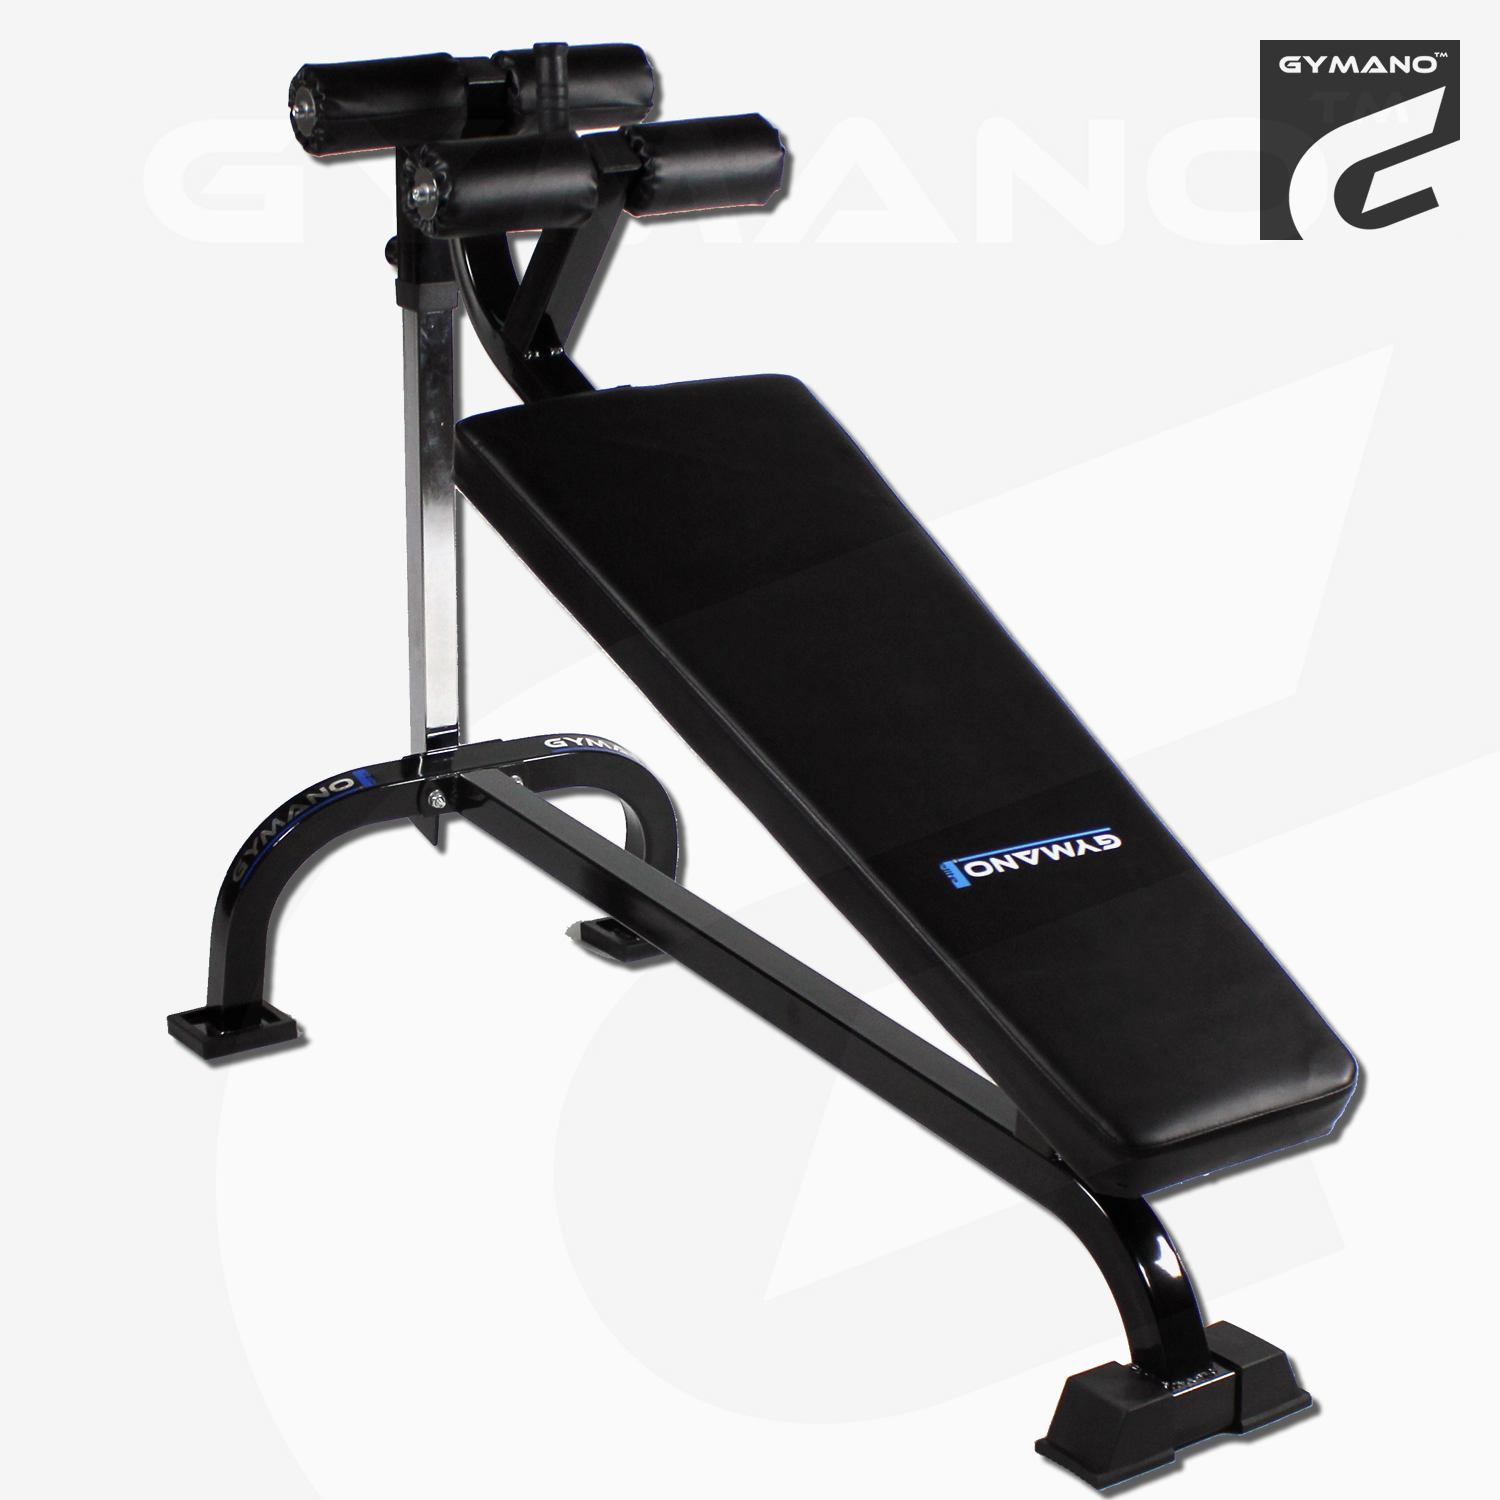 gymano pro decline crunch bench adjustable sit up